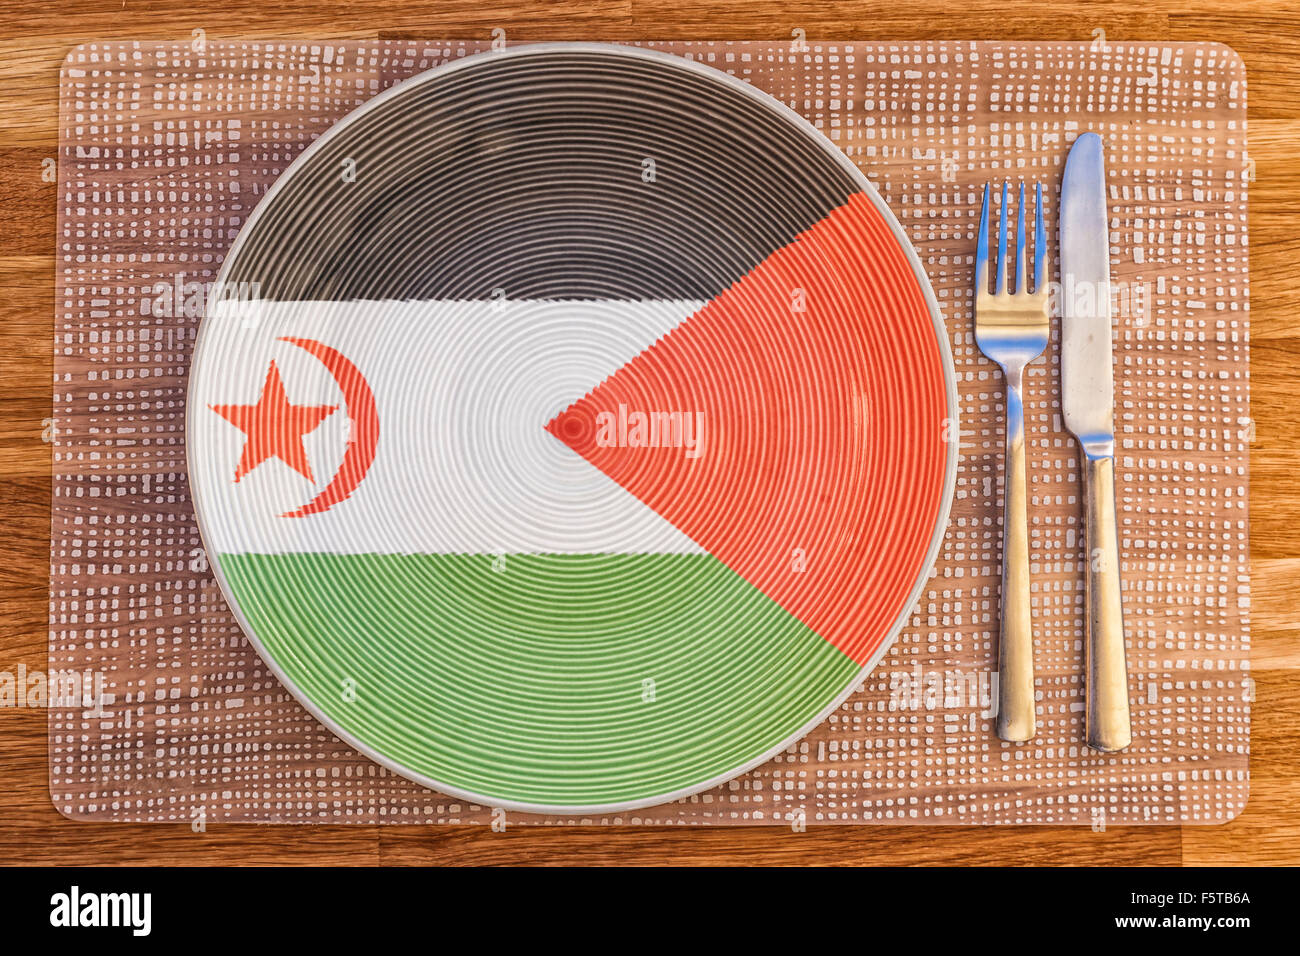 Dinner plate with the flag of Western Sahara on it for your international food and drink concepts. - Stock Image